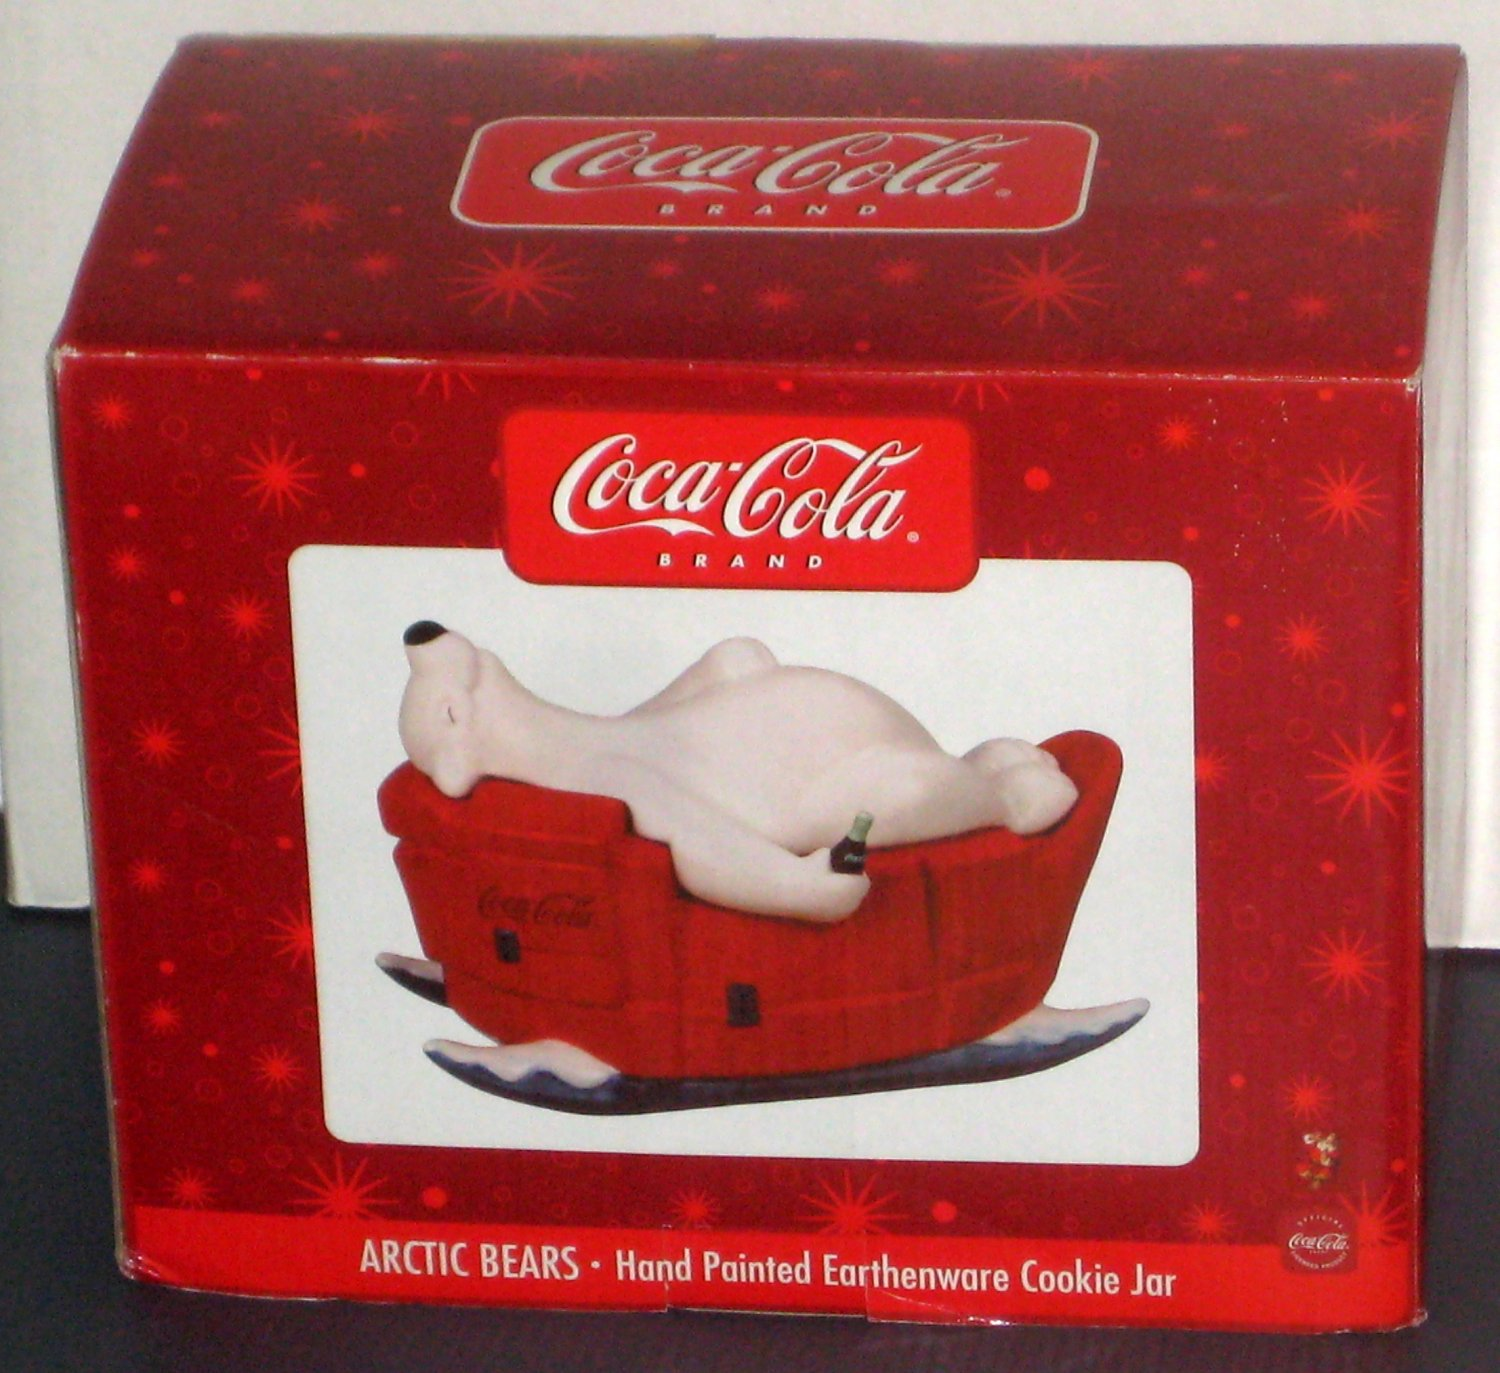 Coca-Cola Arctic Bears Ceramic Cookie Jar Polar Coke Hand Painted Earthenware Sakura